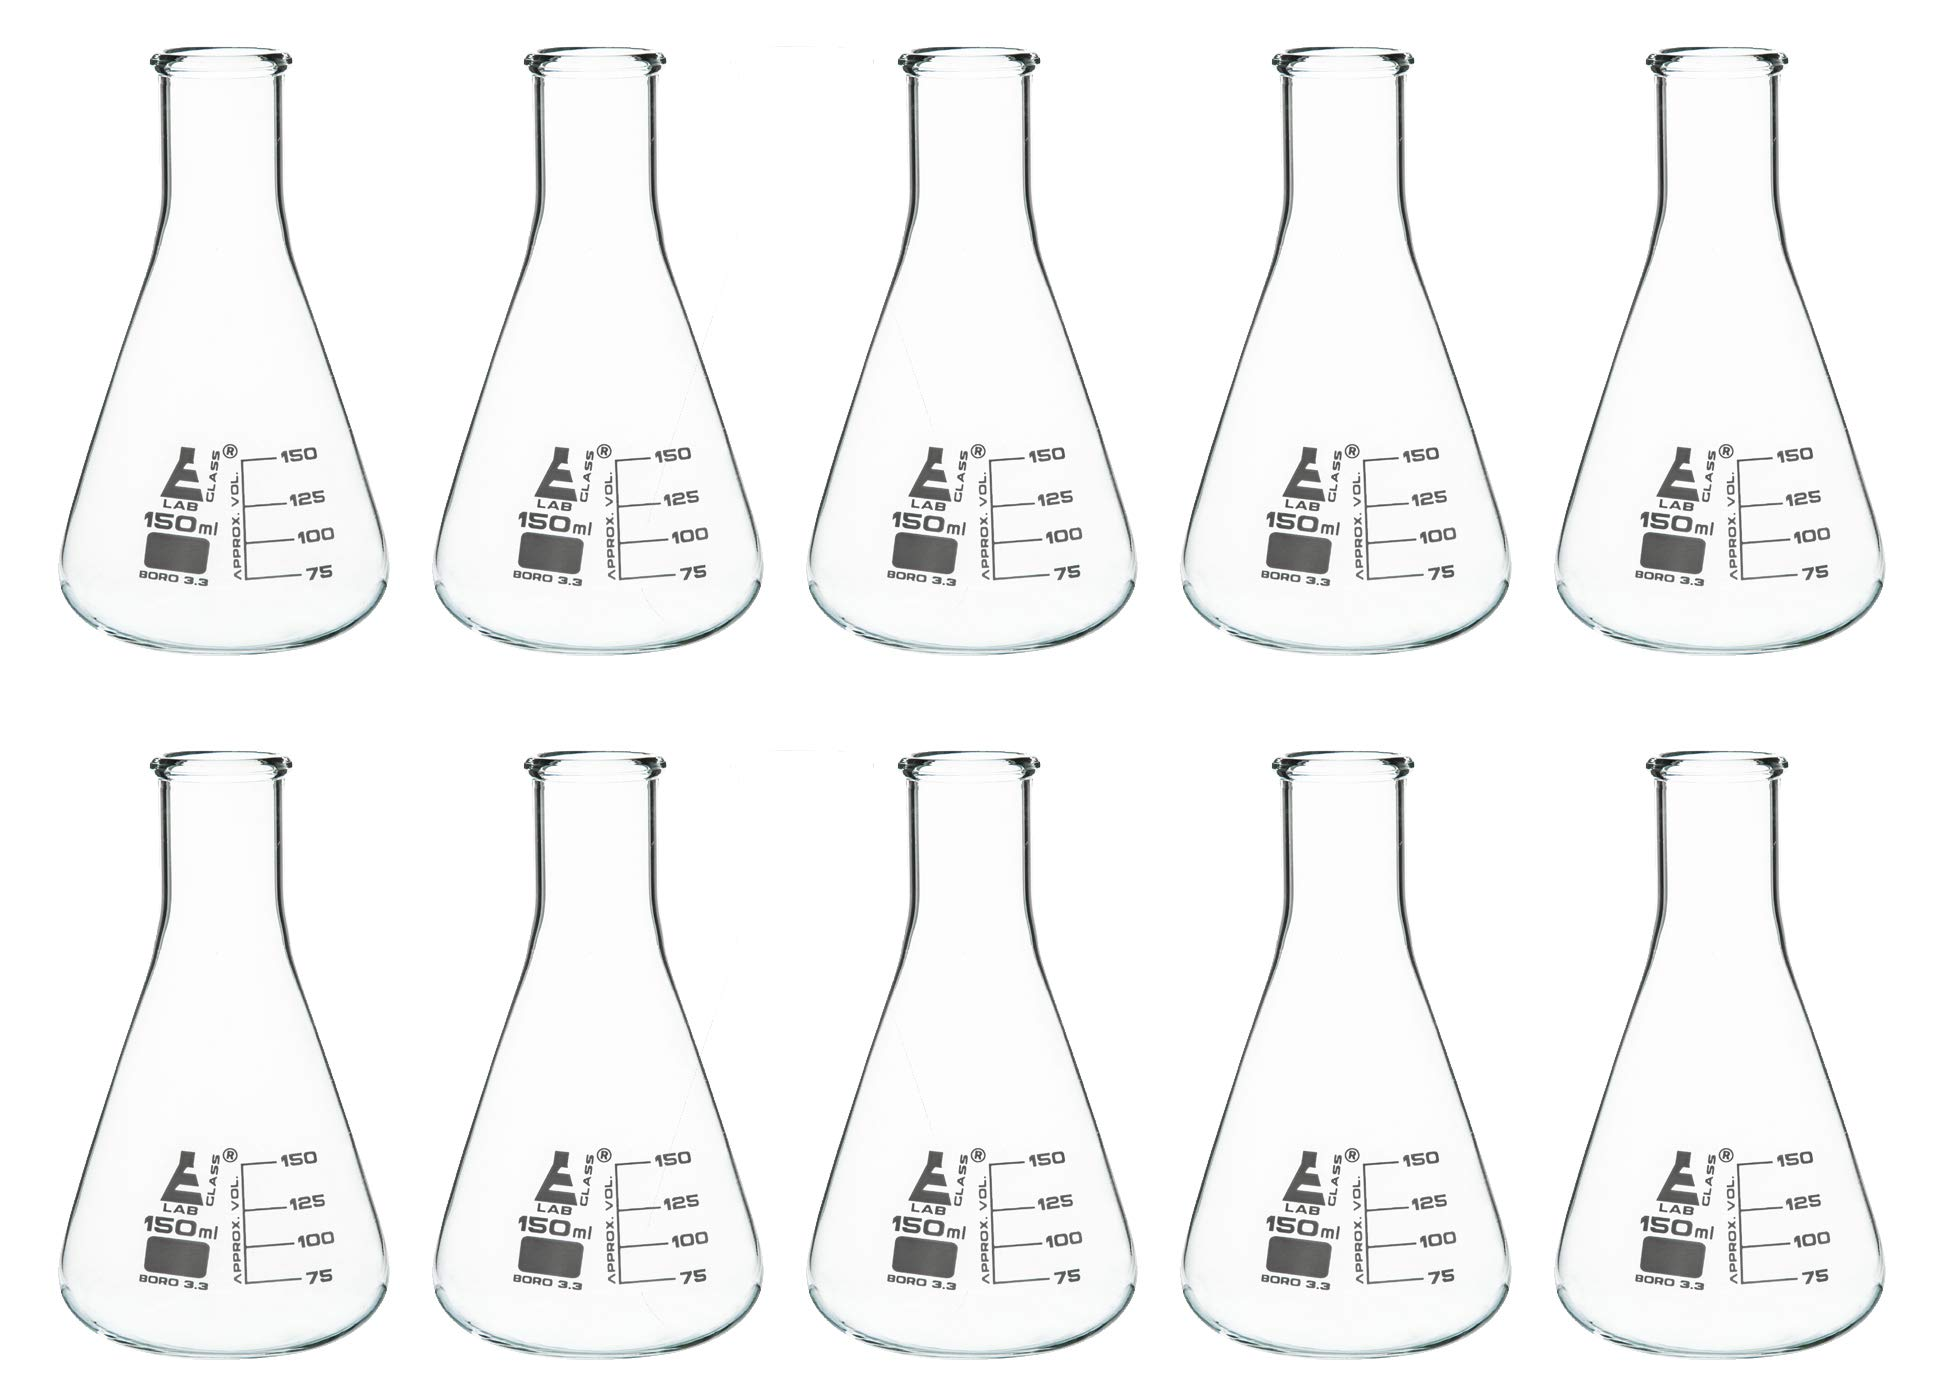 10PK Erlenmeyer Flasks, 150ml - Borosilicate Glass - White Graduations - Narrow Neck - Pack of 10 Flasks - Eisco Labs by EISCO